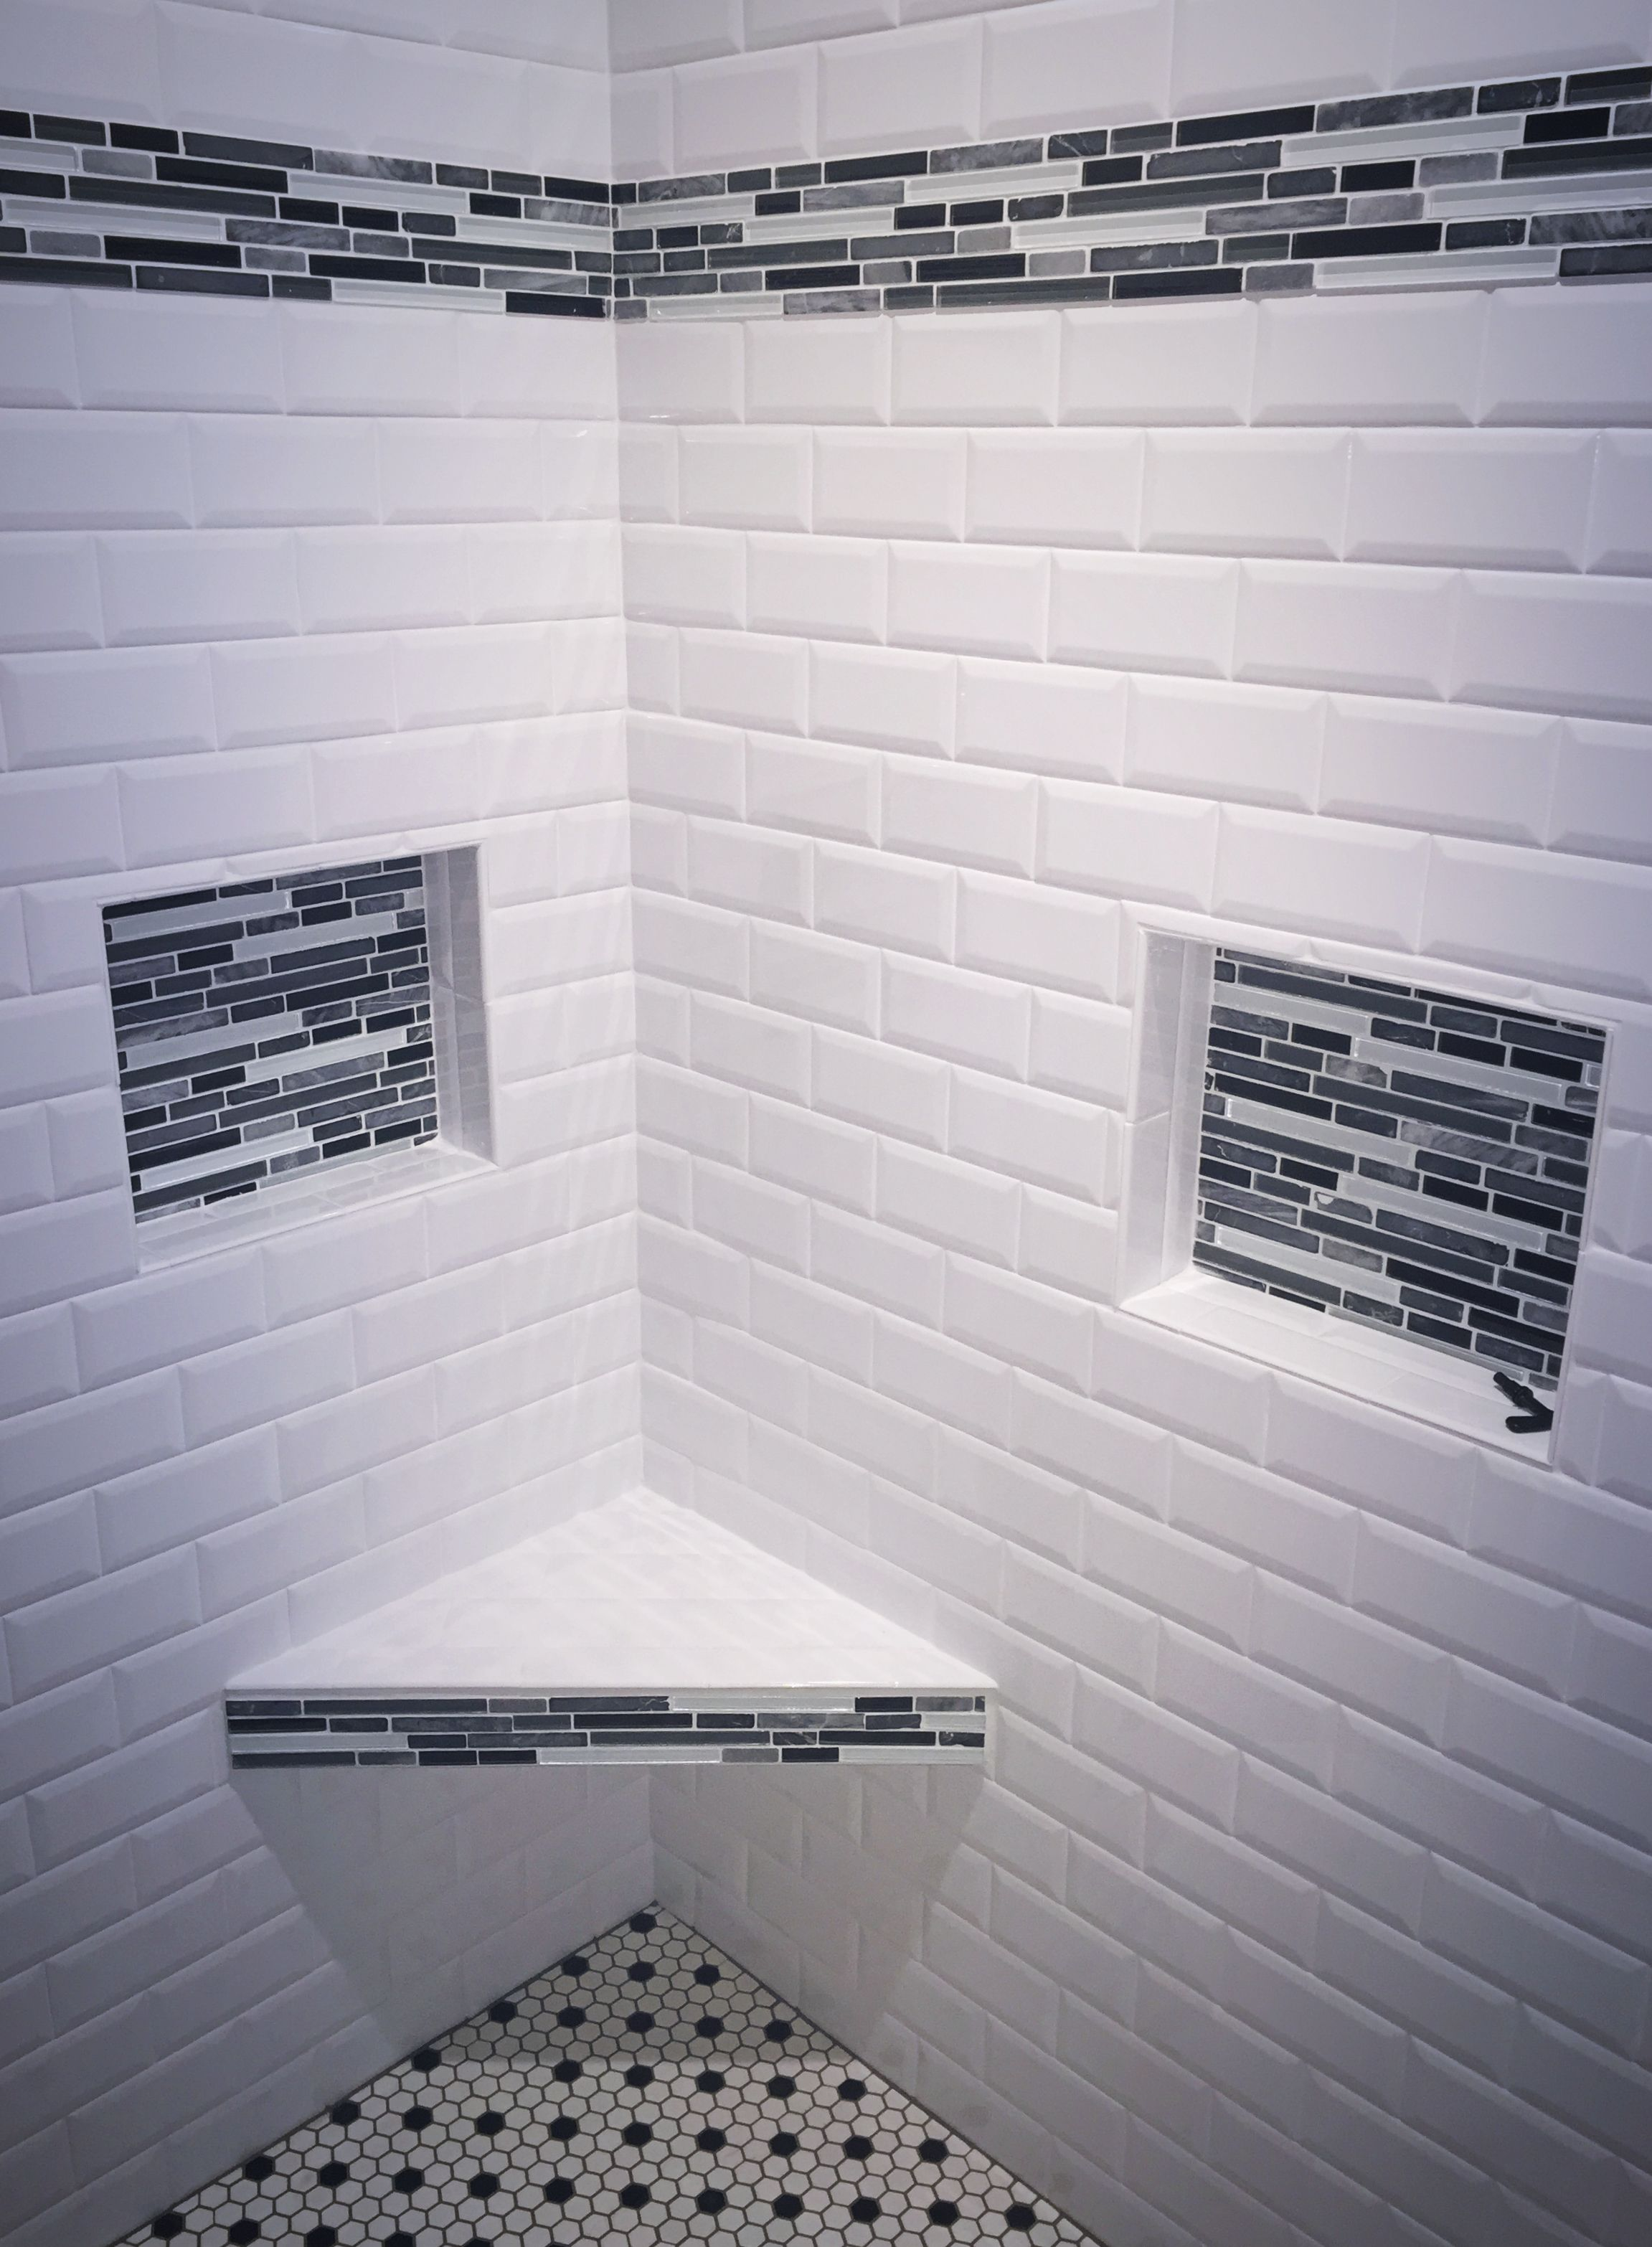 Remodeled Shower Walls Done In On Trend White Subway Tile